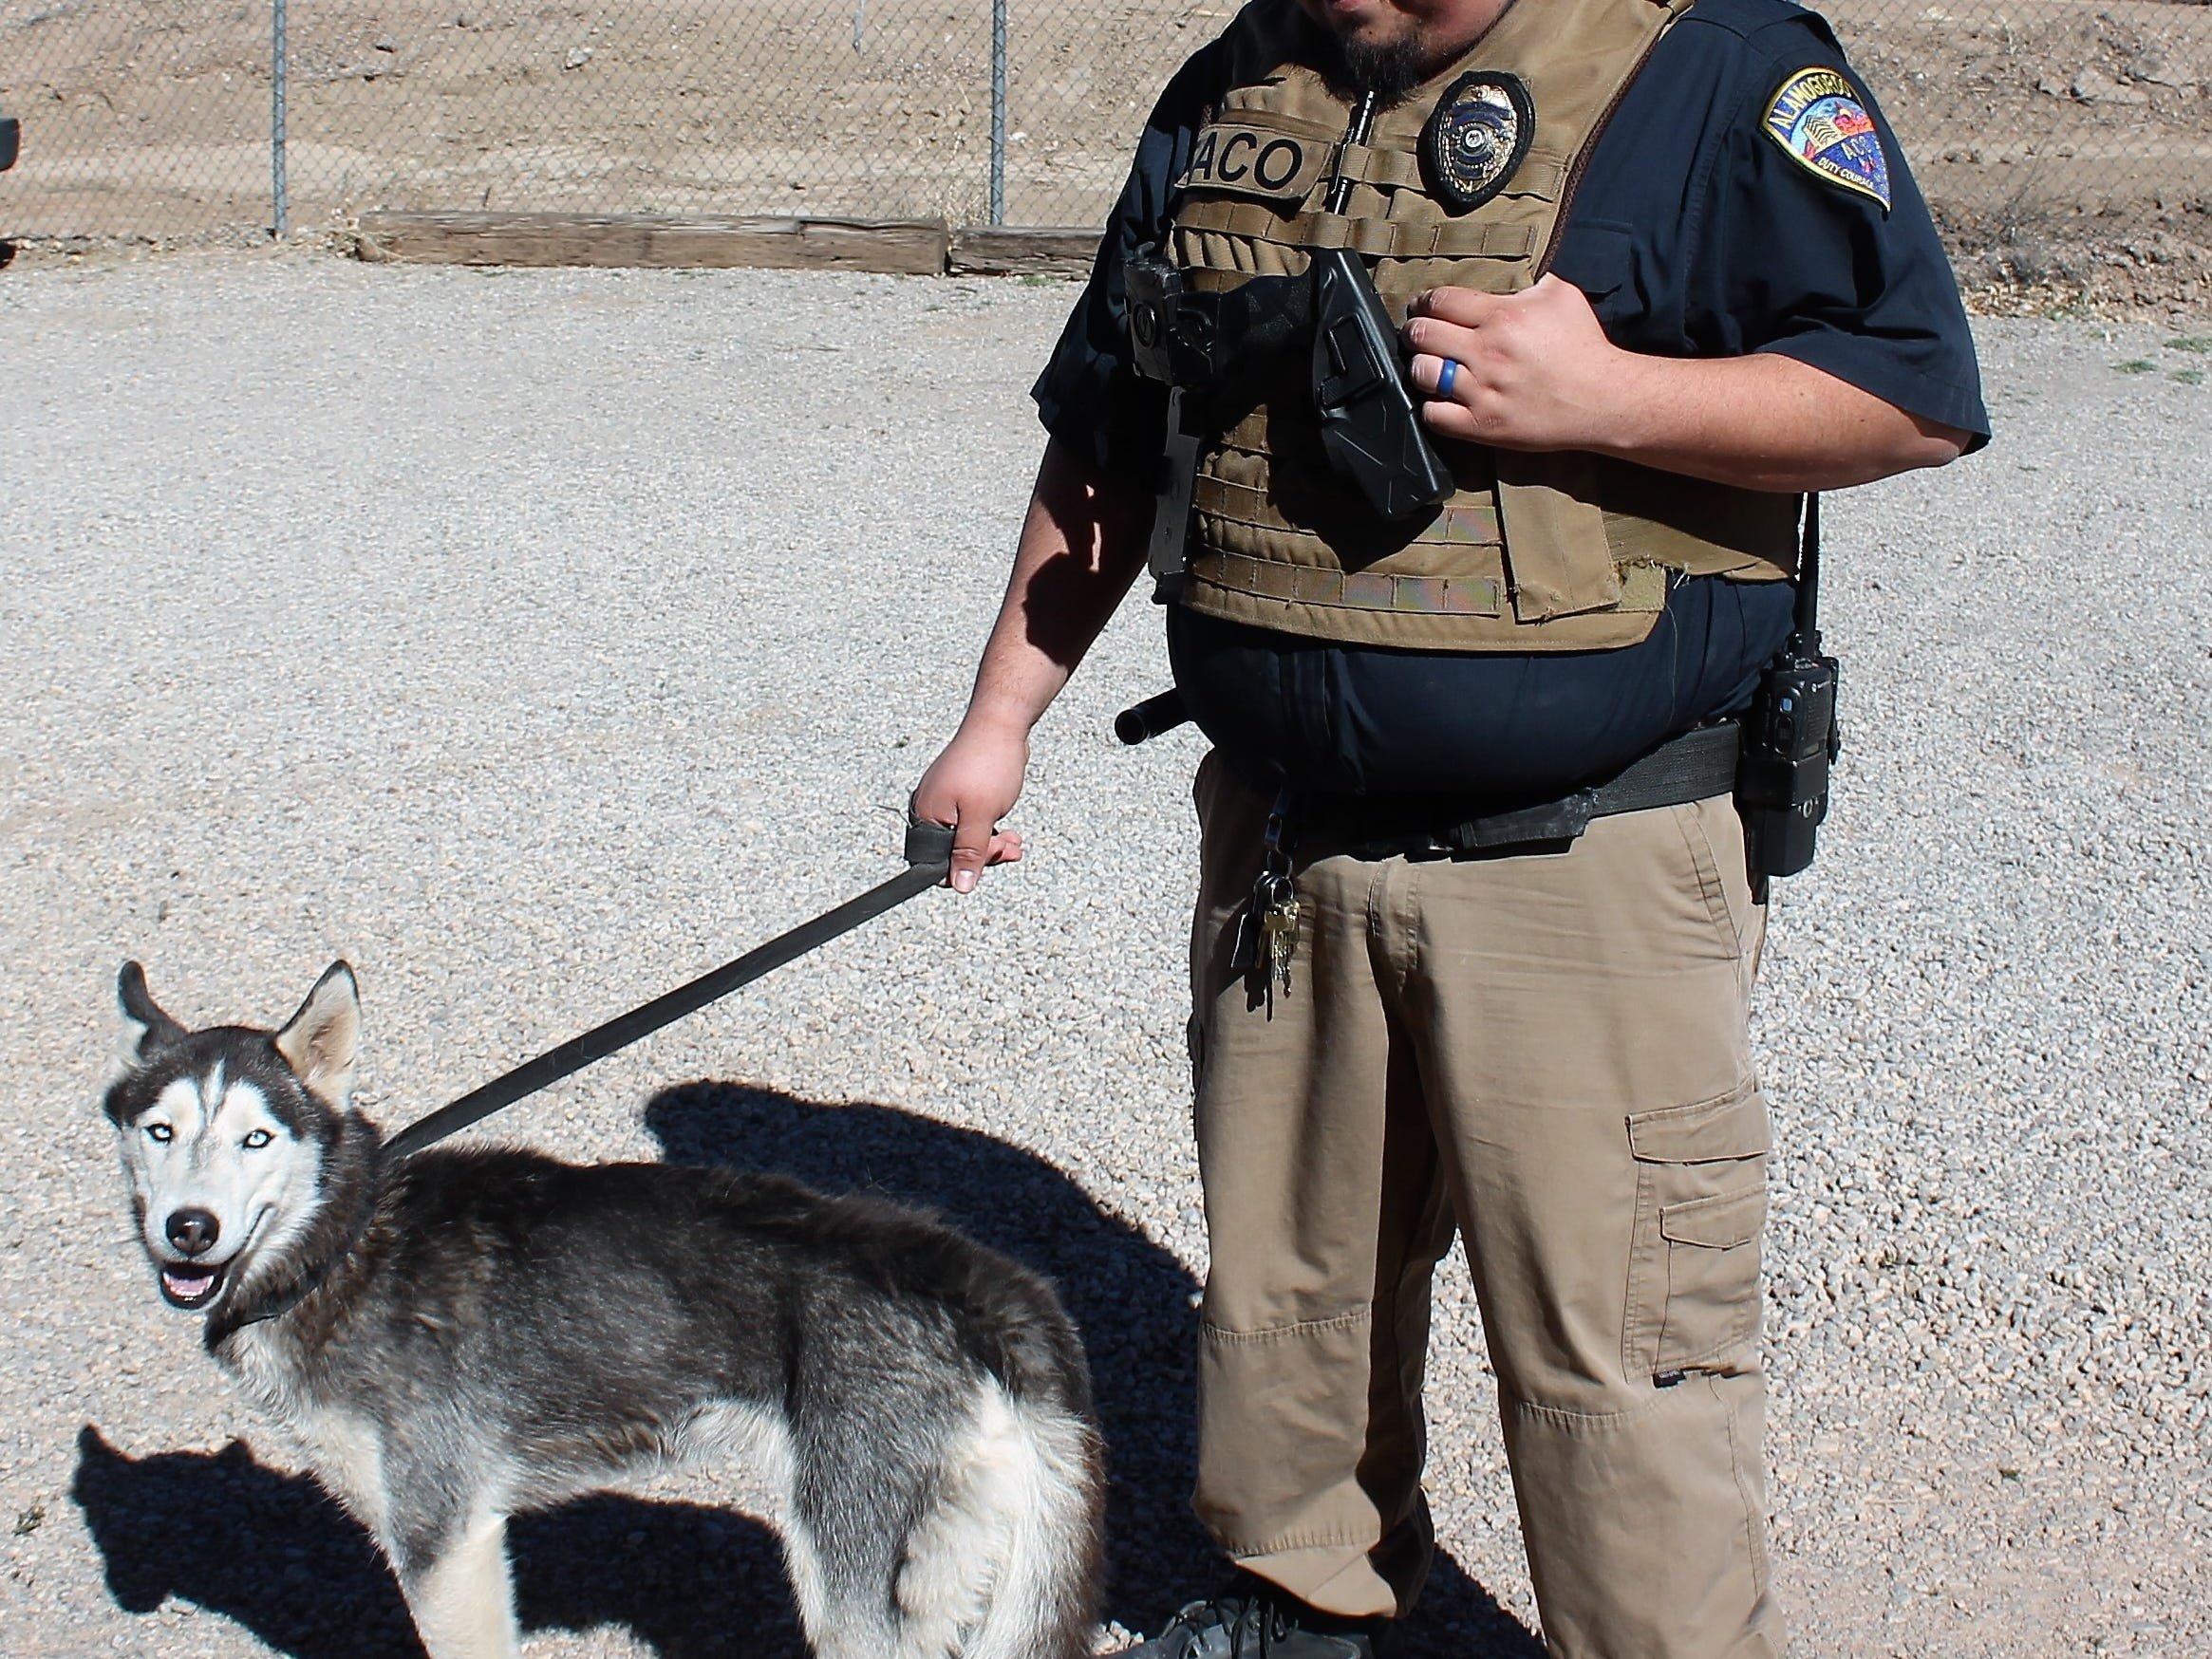 Alamogordo Animal Control Officer Carlos Juarez takes a husky mix for a walk that is up for adoption at Alamogordo Animal Control.